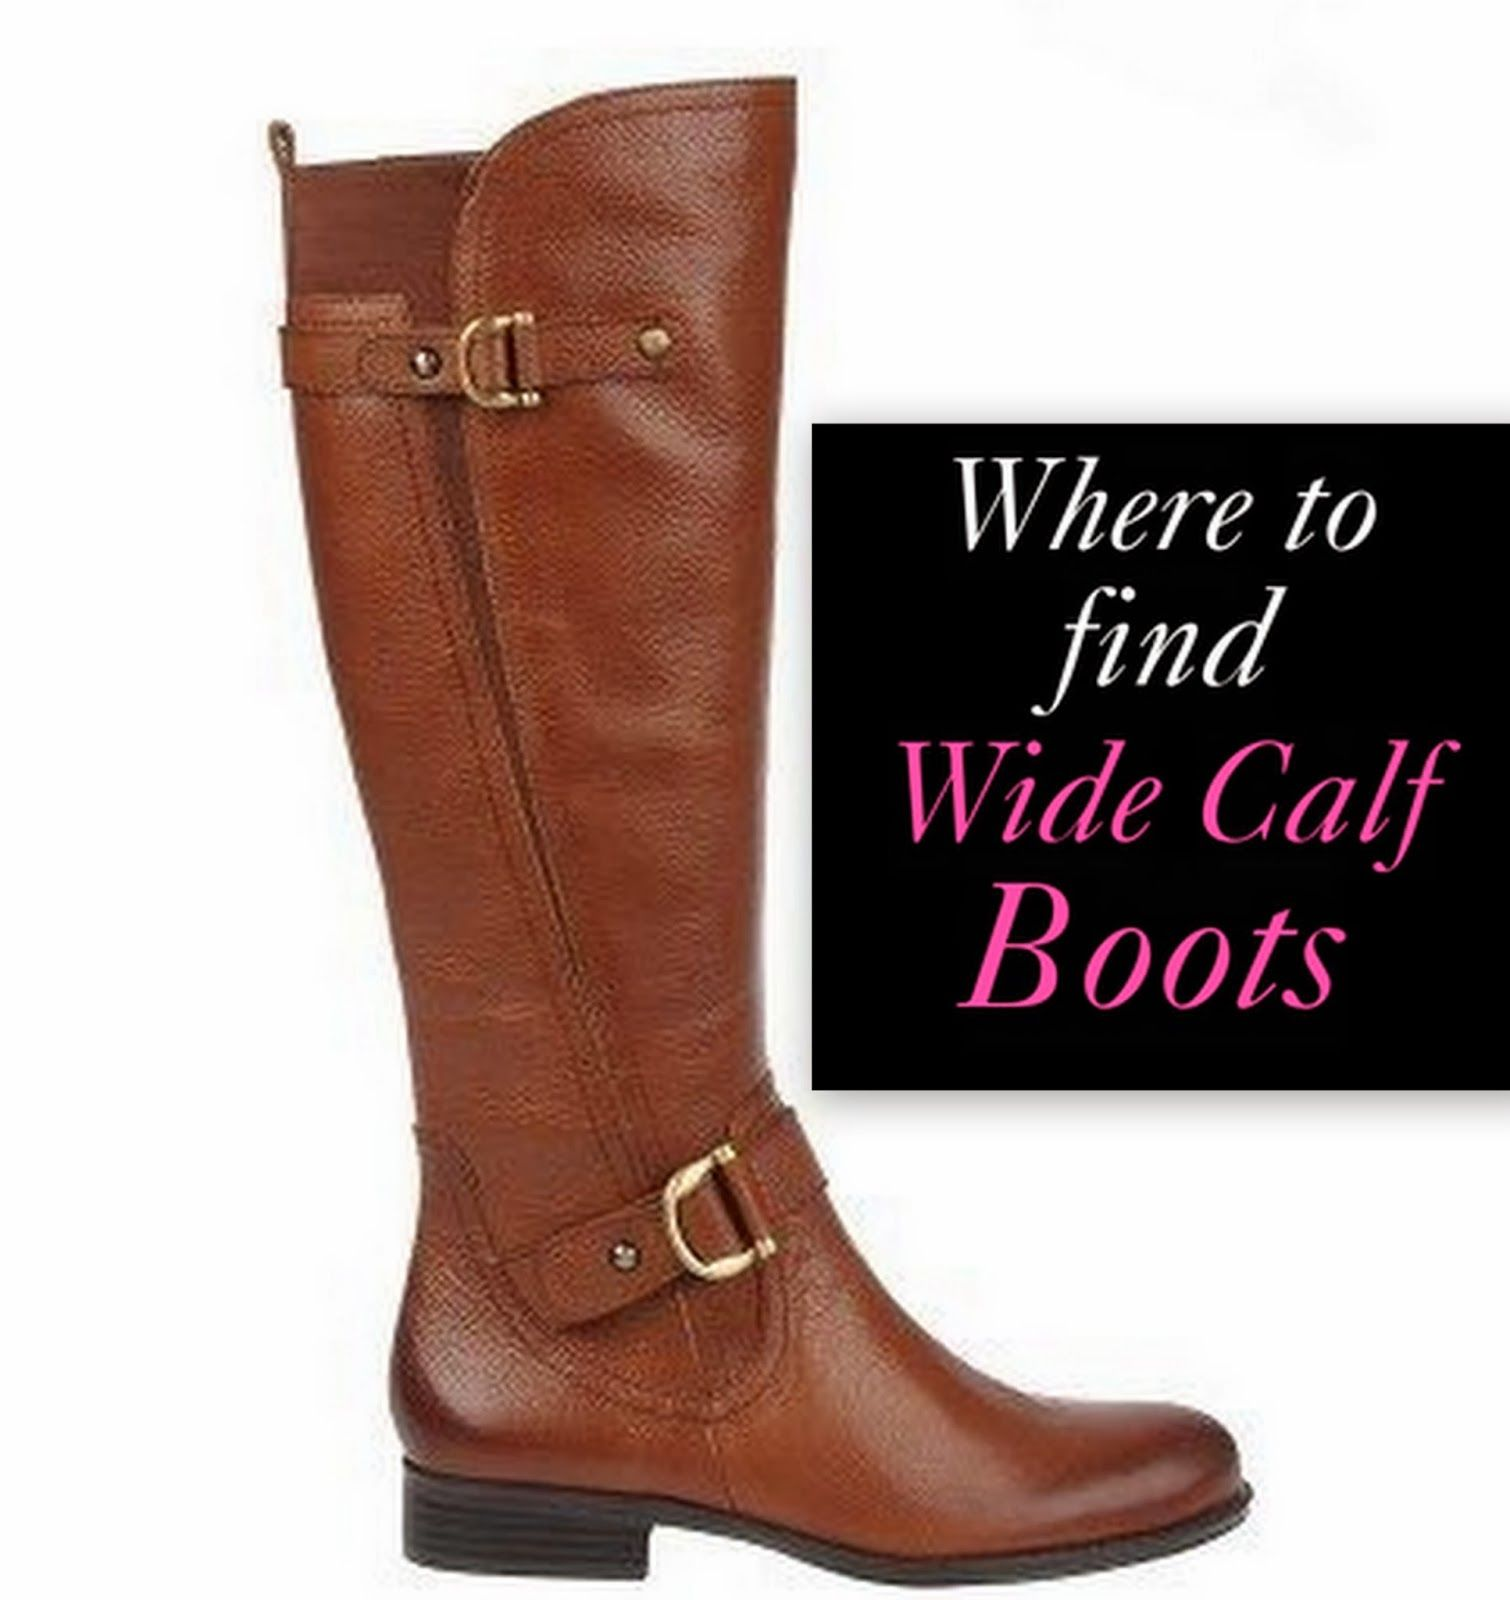 9ad8bc67949a TheStyleSupreme  Where to Shop for Wide Calf Boots